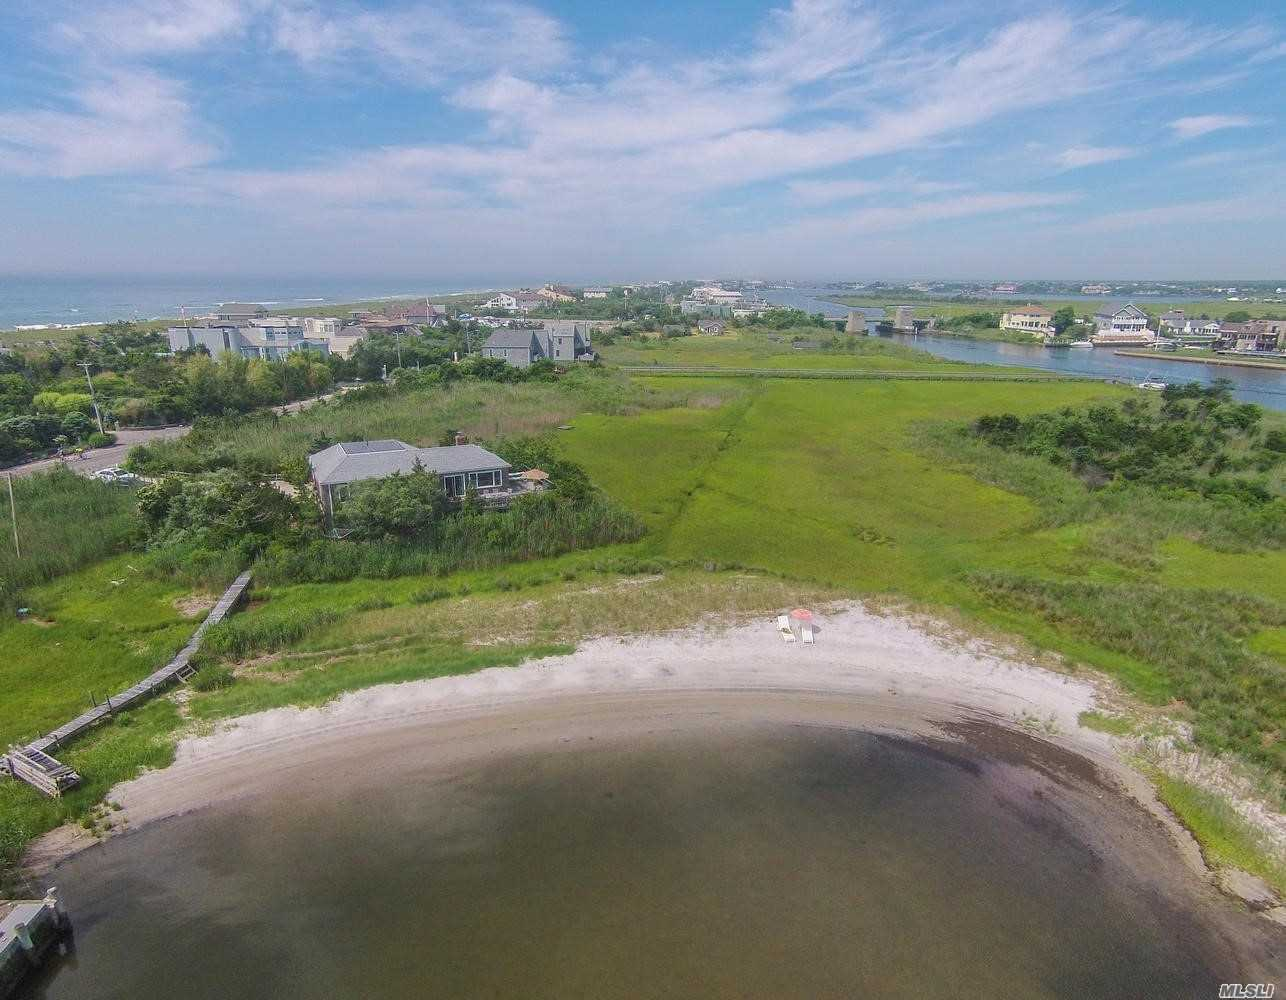 With Its Own 125 Ft Of Bay Beach & Surrounded By 6 Acres Of Preserved Land, 76 Dune Rd Is Situated Perfectly For Privacy & Relaxation. This Cedar Shake Shingled Beach House Offers 3 Brs, 3 Full Bths, Lr, Dr & Eik. Expansive Decks Offer Magnificent & Unobstructed Views Of Quantuck Bay. Pvt Dock & Deeded Ocean Access Via Private Pathway Across Dune Rd. Ability To Expand.